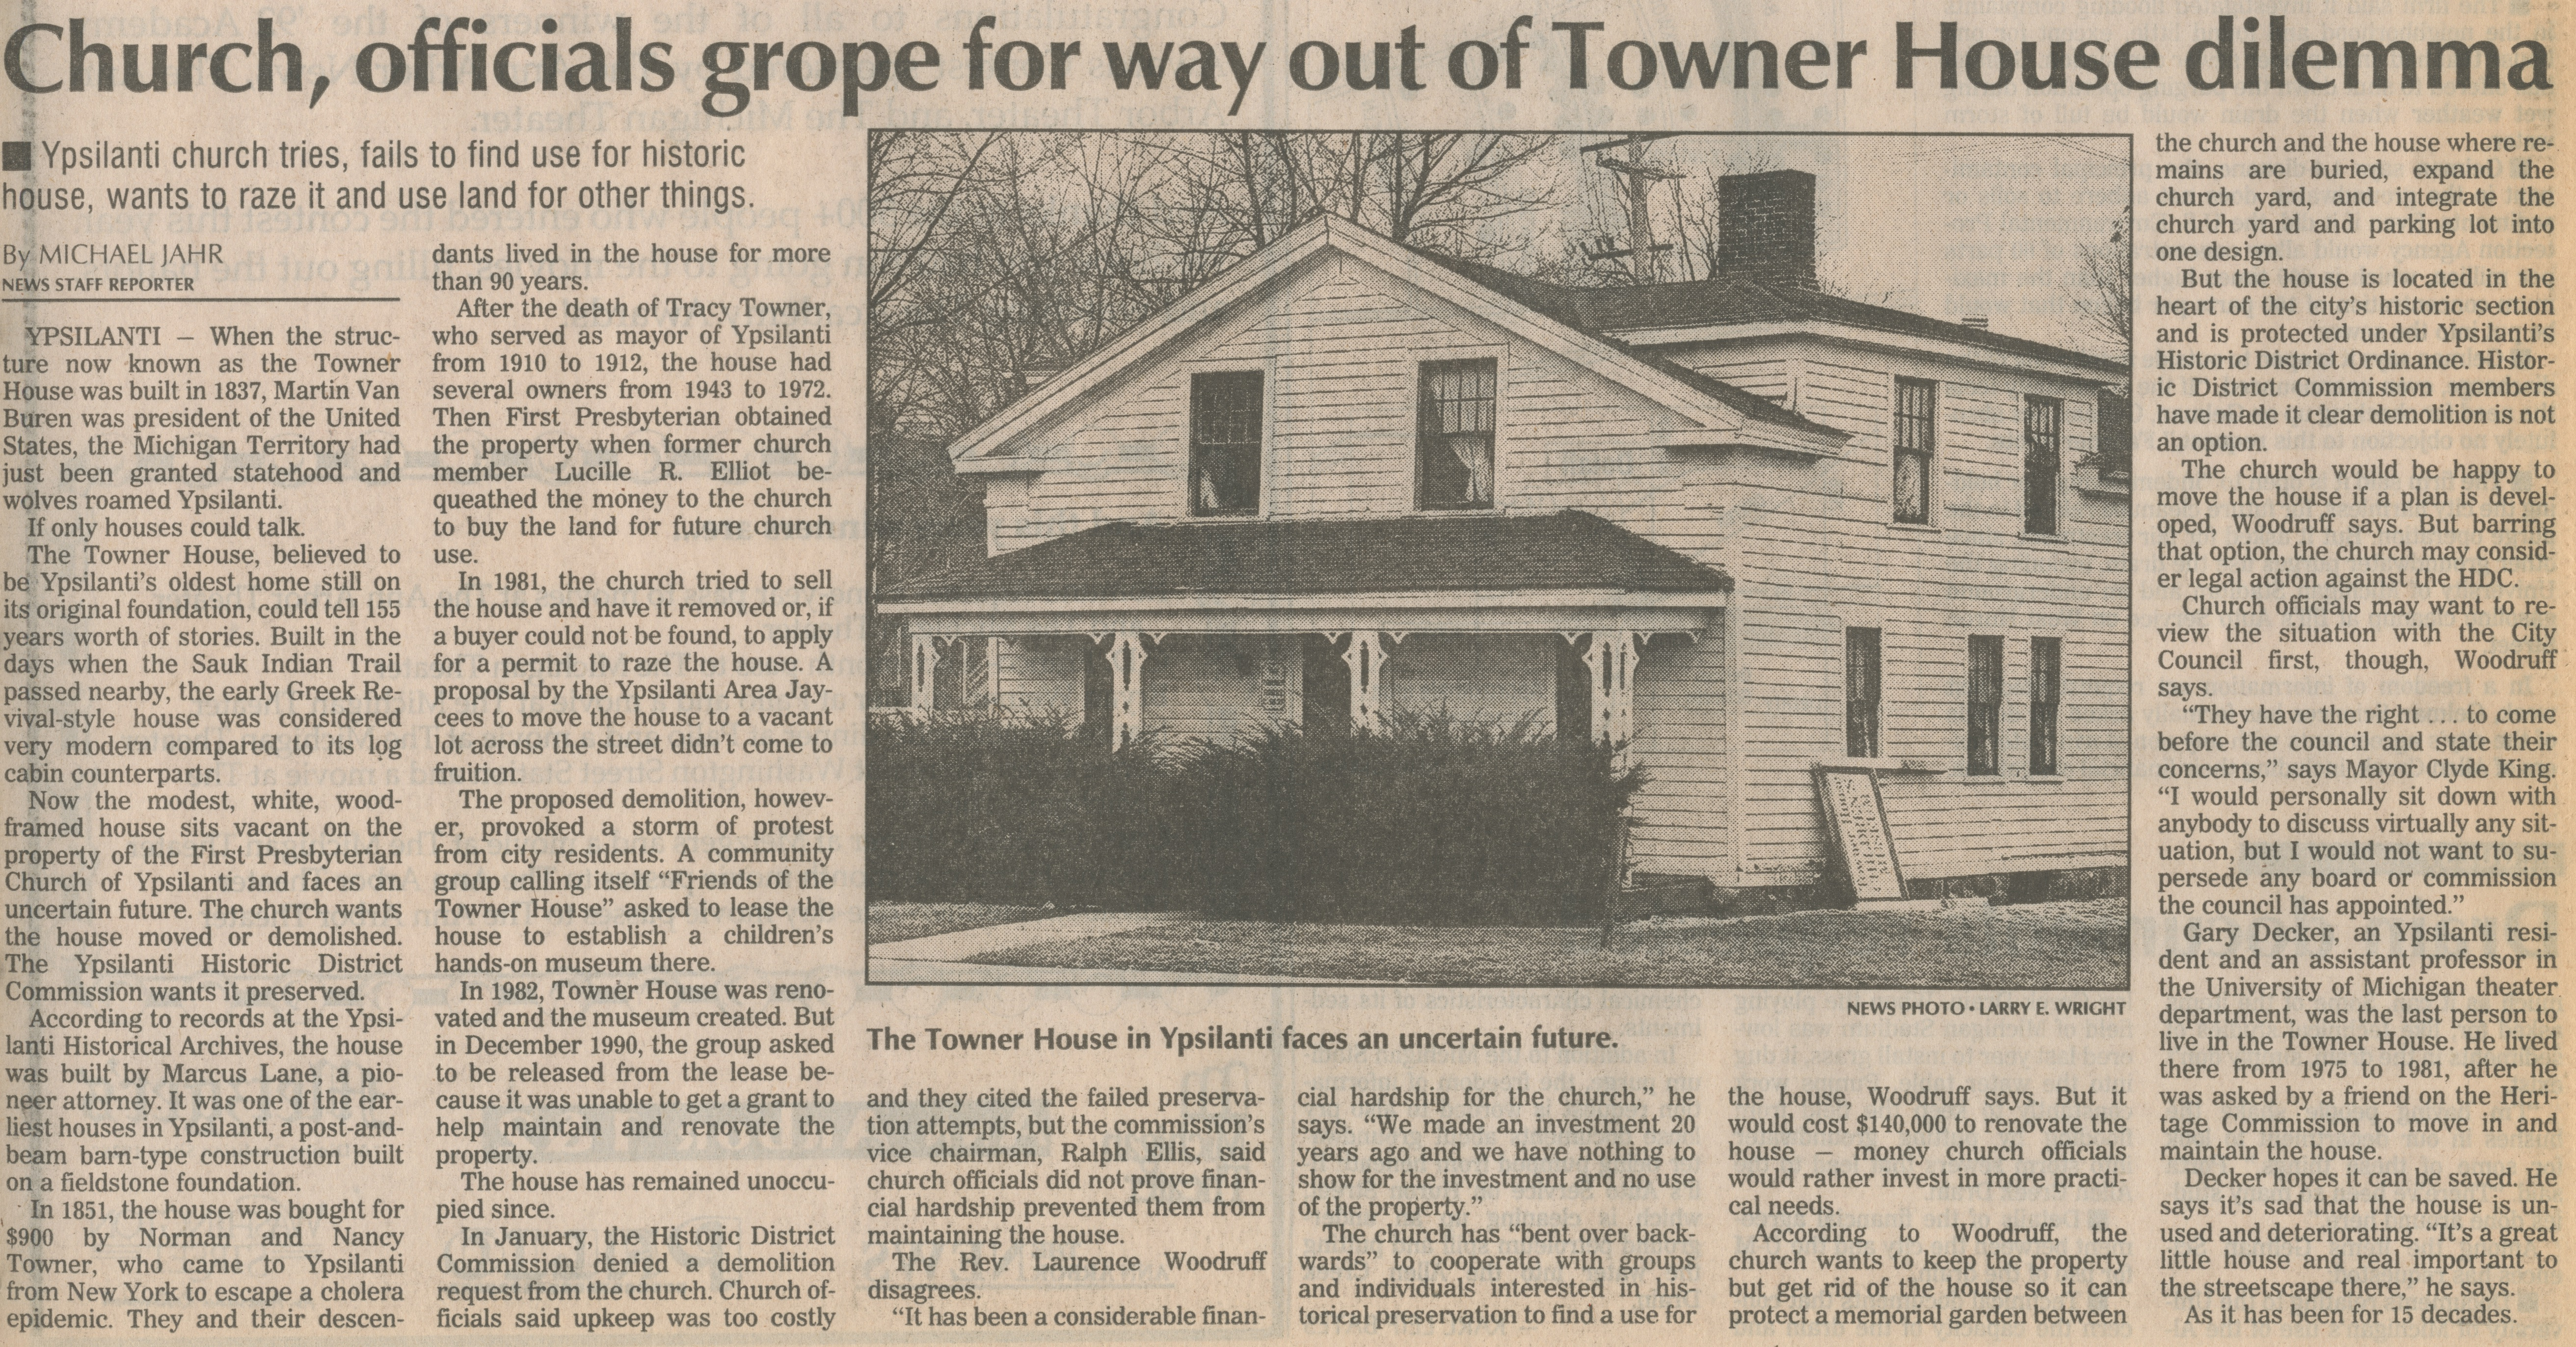 Church, Officials Grope For Way Out Of Towner House Dilemma image